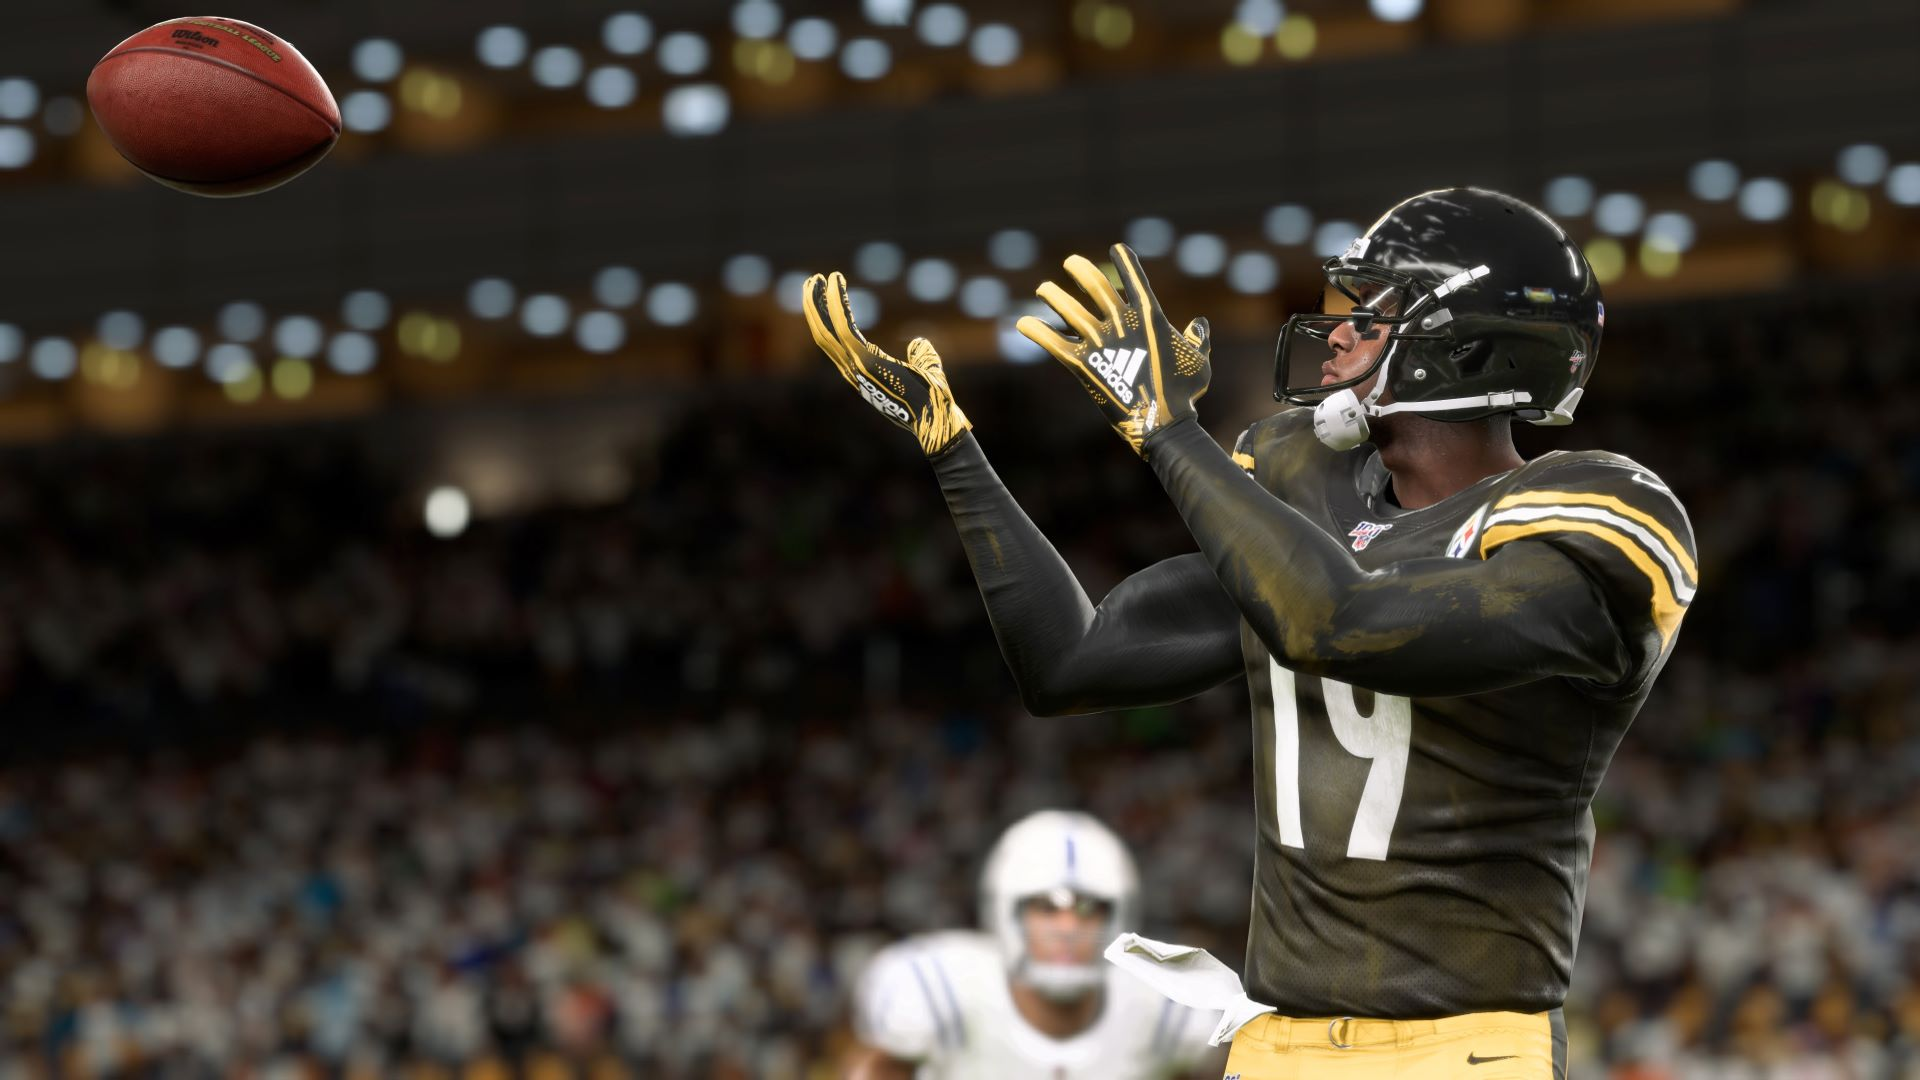 Madden NFL 20 on PS4